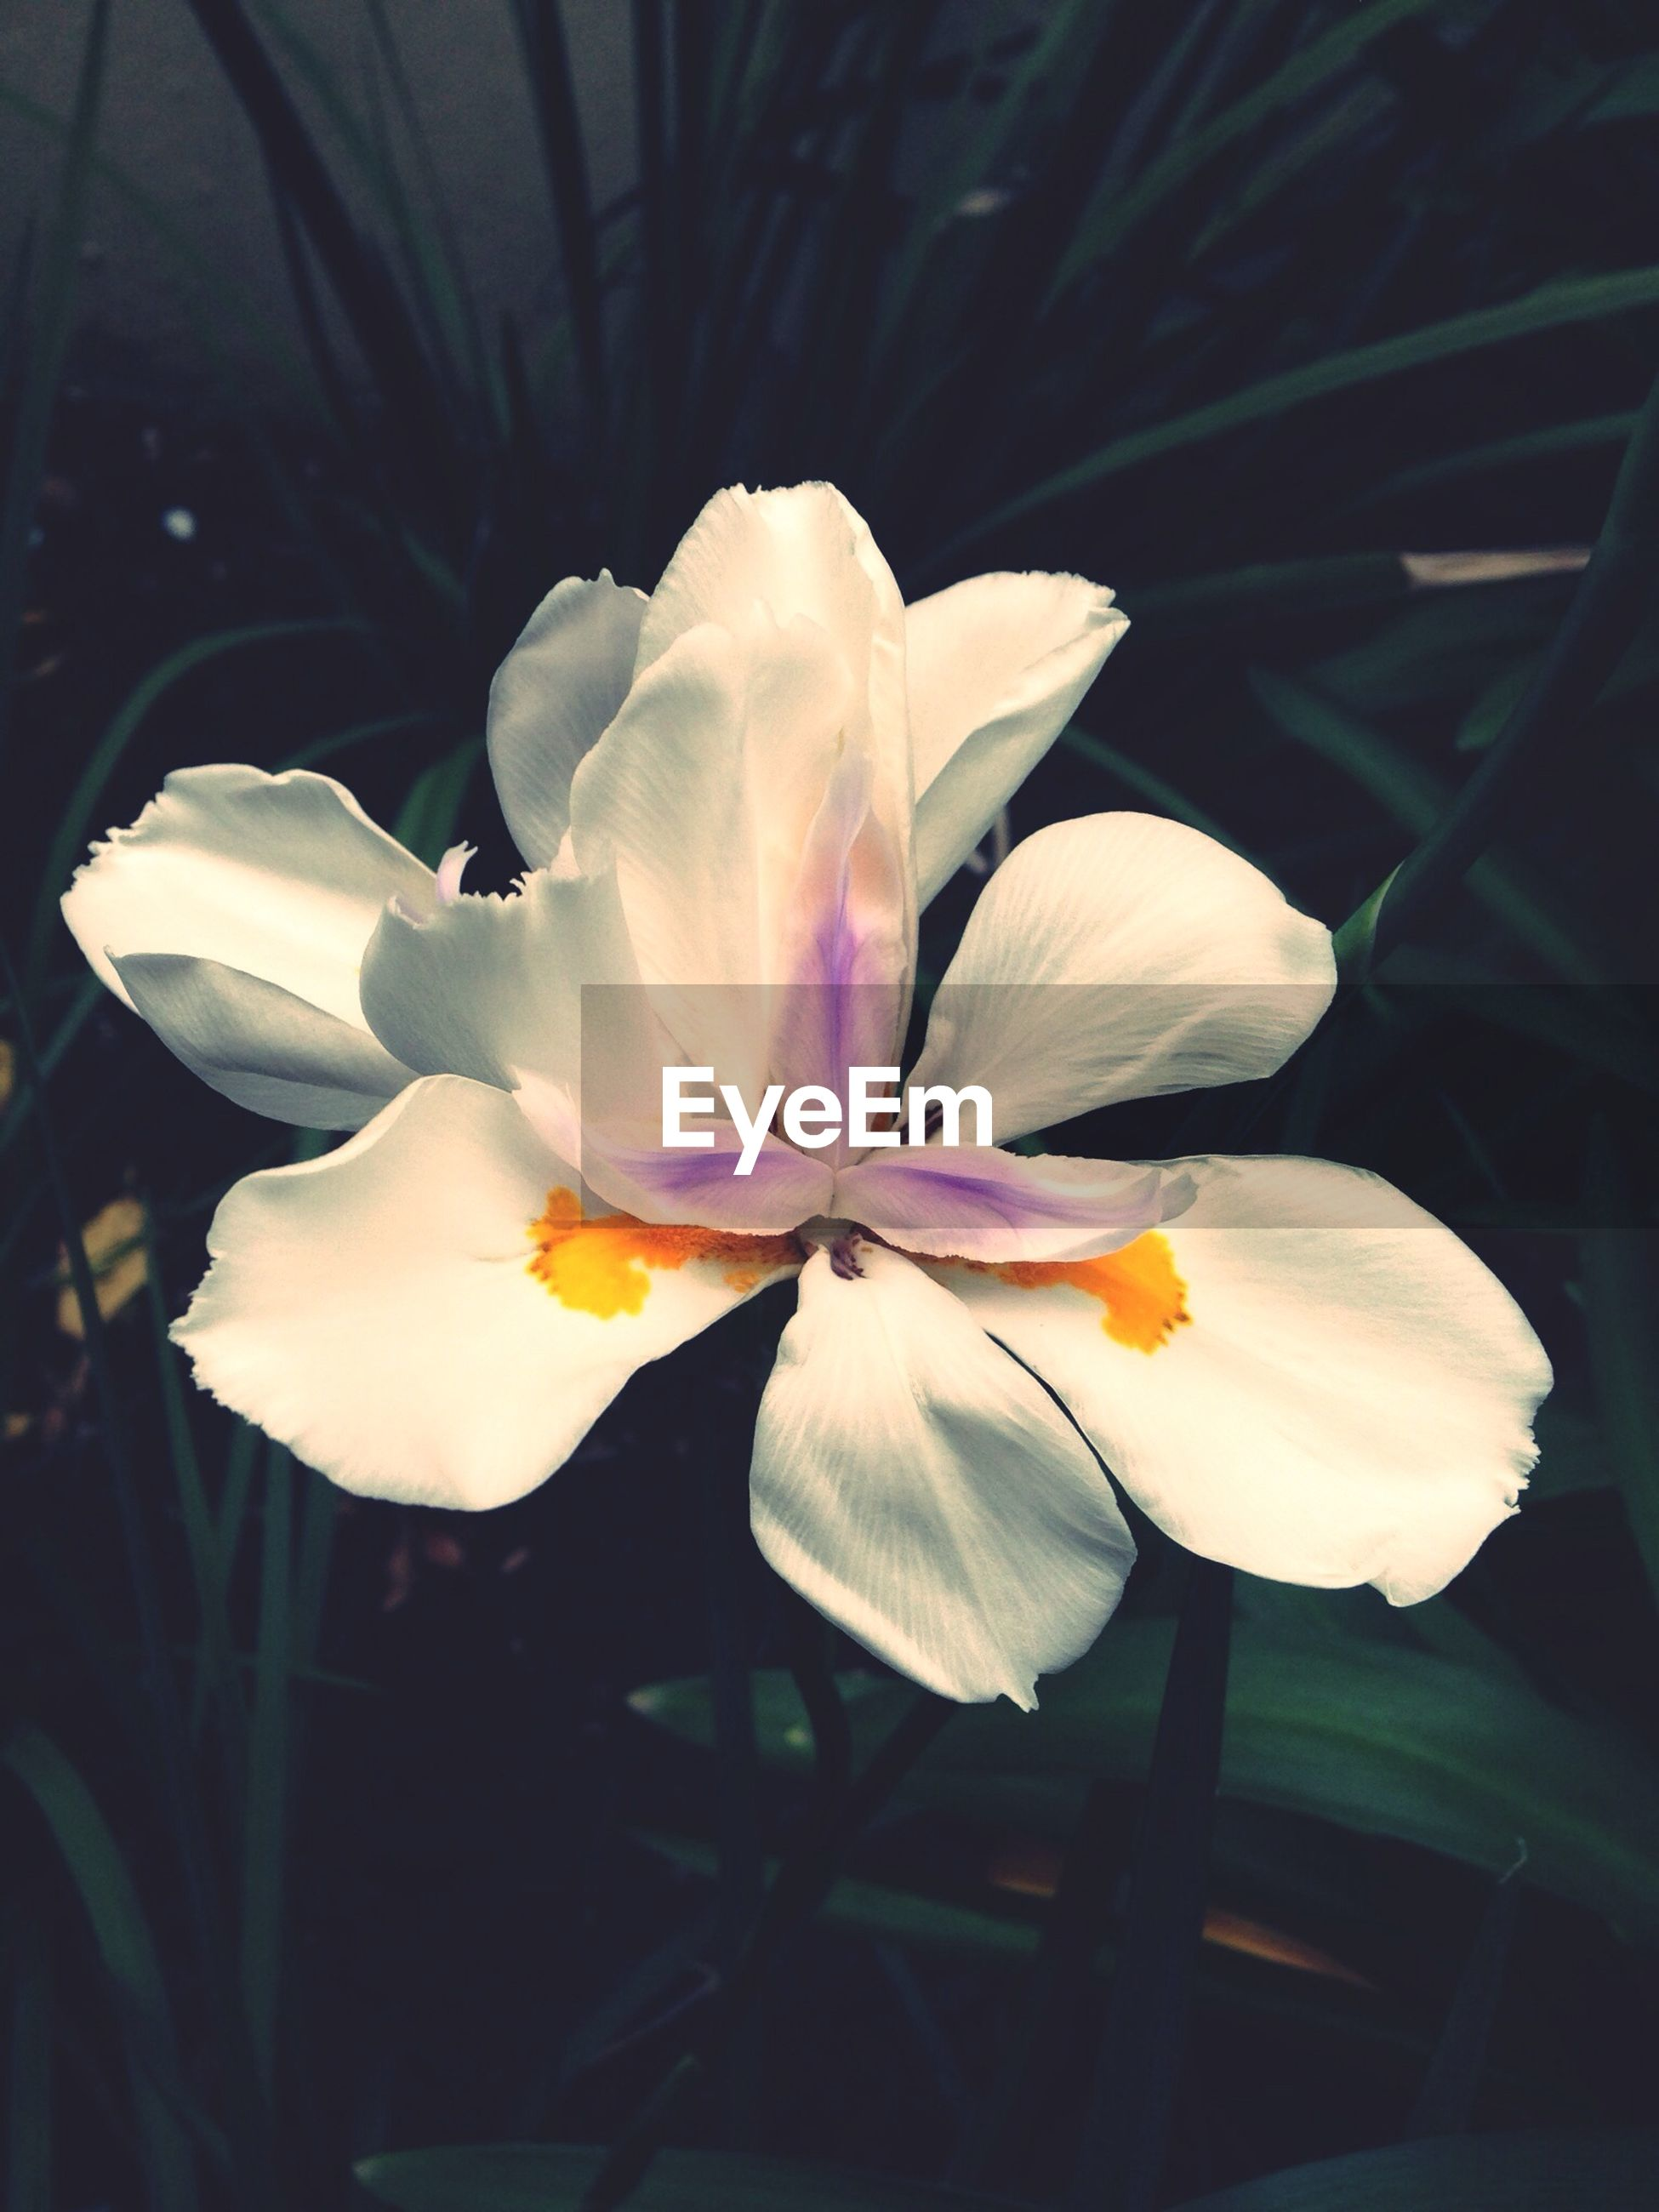 flower, petal, freshness, flower head, fragility, growth, beauty in nature, close-up, white color, blooming, nature, plant, stamen, focus on foreground, in bloom, pollen, blossom, stem, no people, single flower